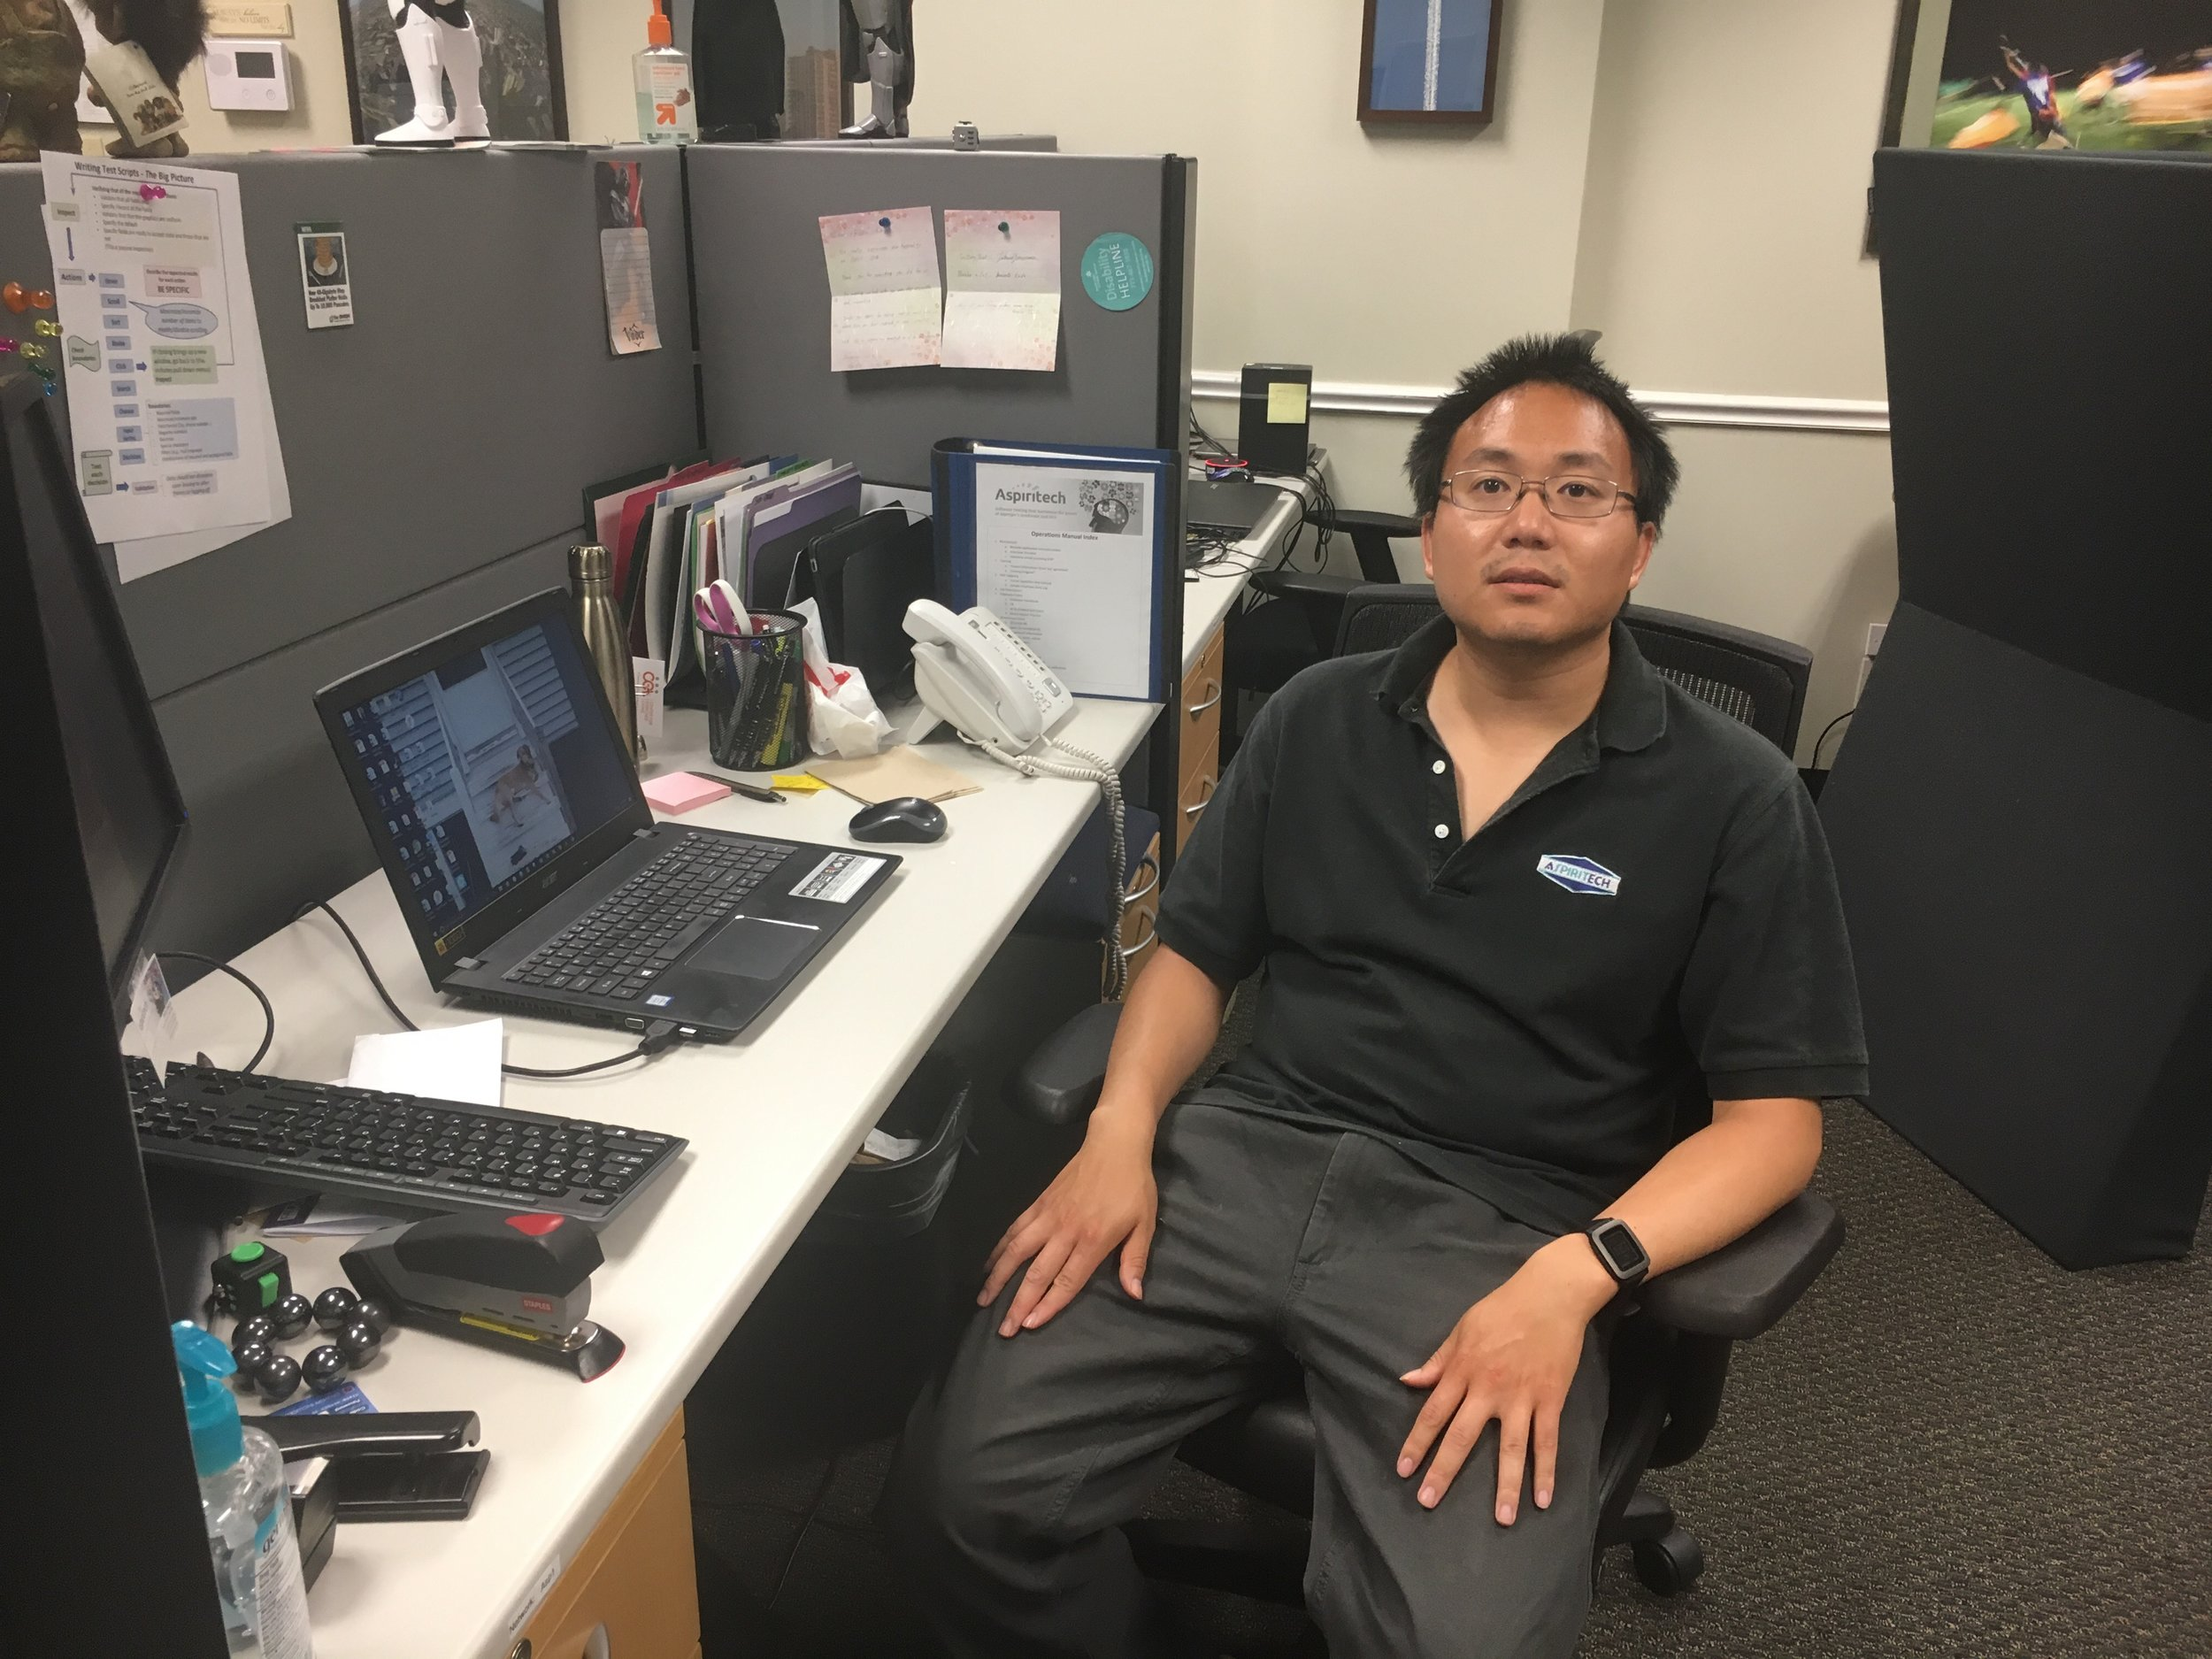 """I feel like I am advancing my skills and learning a lot with computers. I am also learning to work with others, follow directions, and stay focused on work.""  -Alan, 32 years old, QA Analyst since 2009"